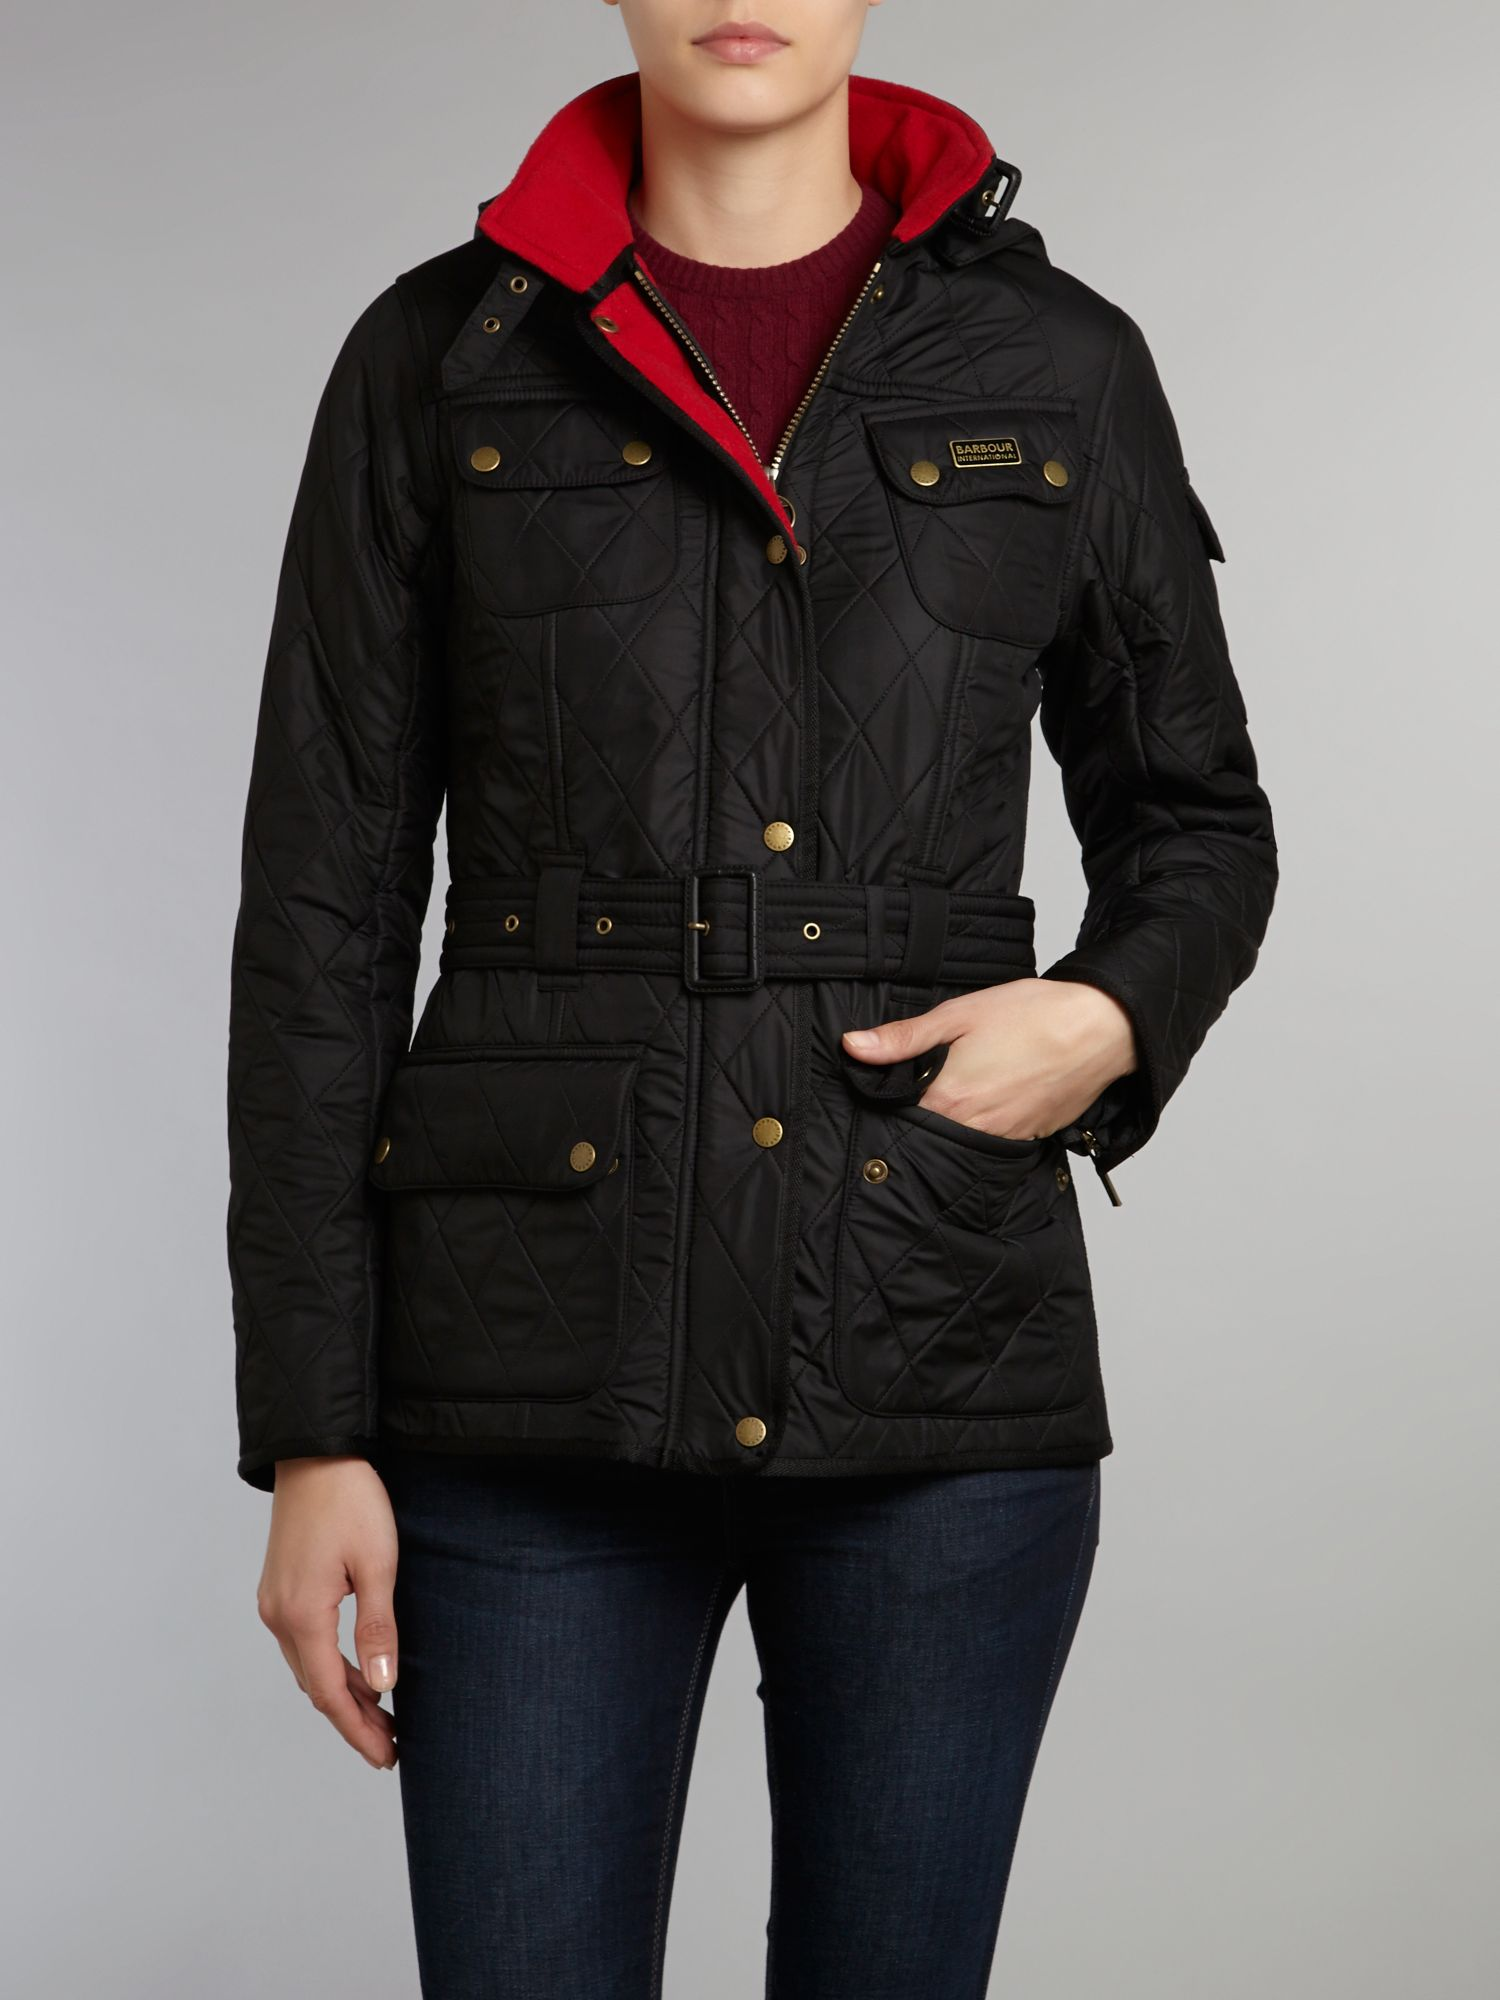 Viper international jacket with hood